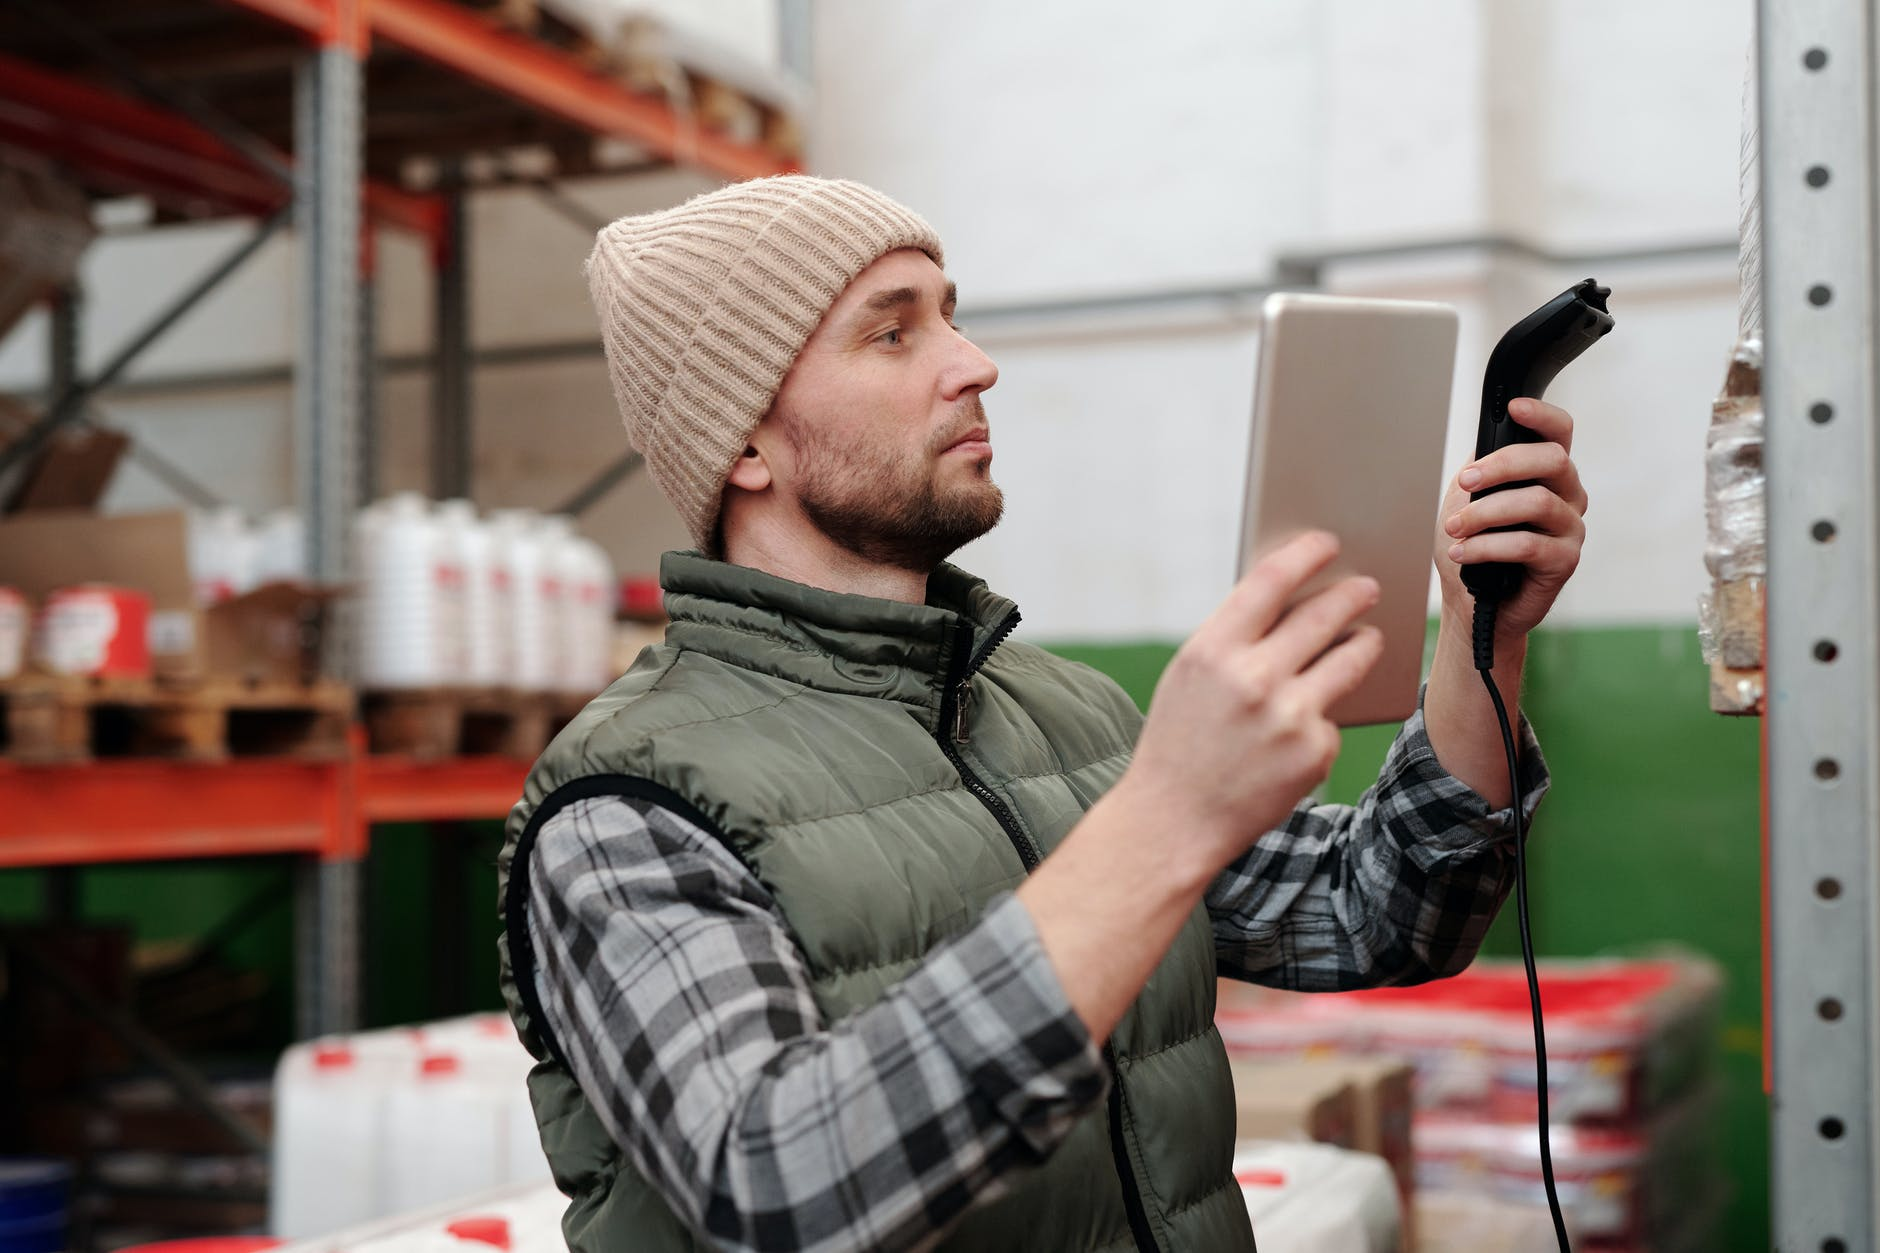 IT asset management (ITAM) and inventory management are both useful practices that can benefit any organization using IT